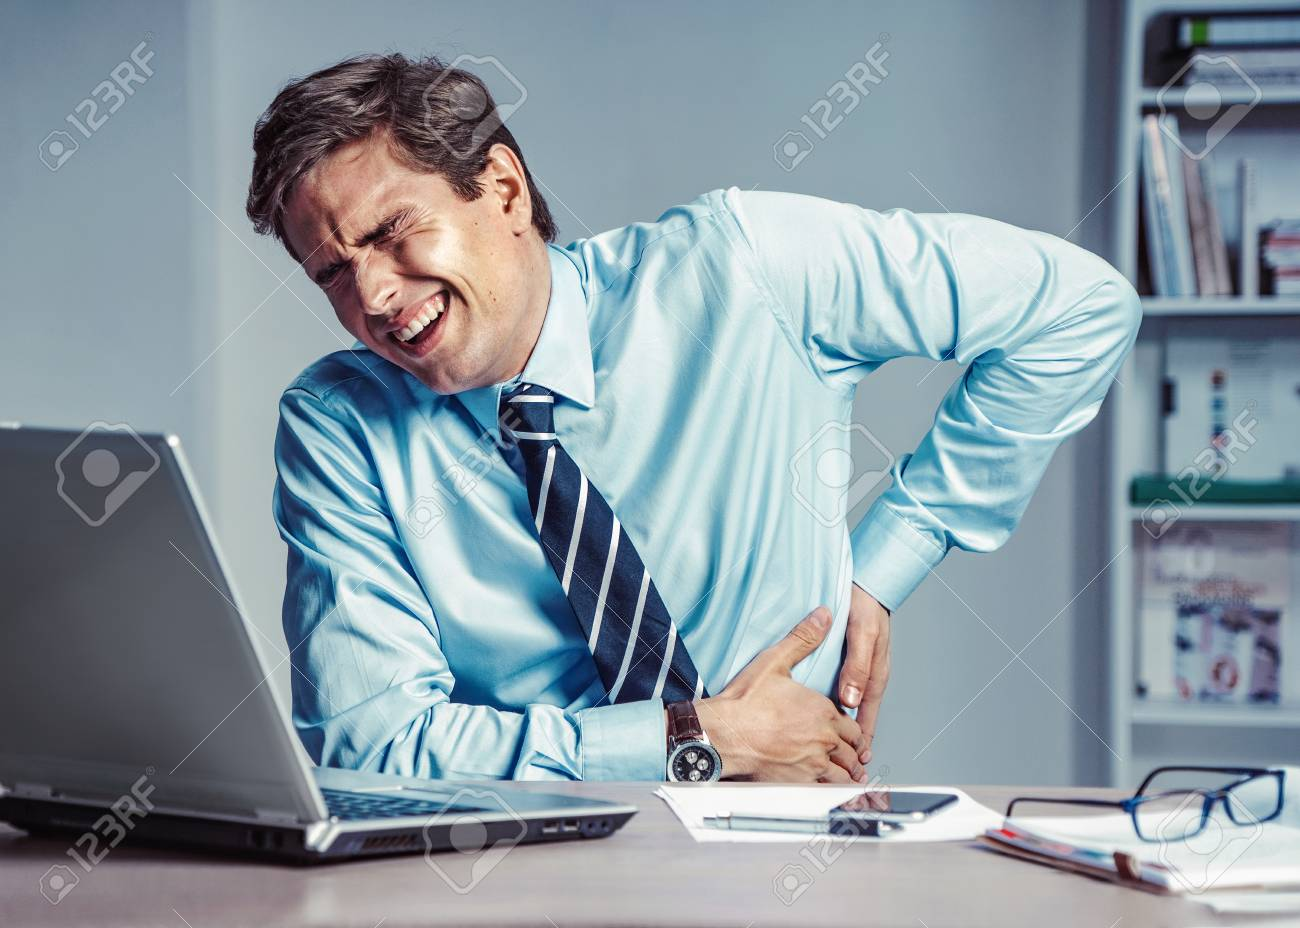 Employee suffers from severe pain in back. Photo of man working in the office. Medical concept. - 113557024